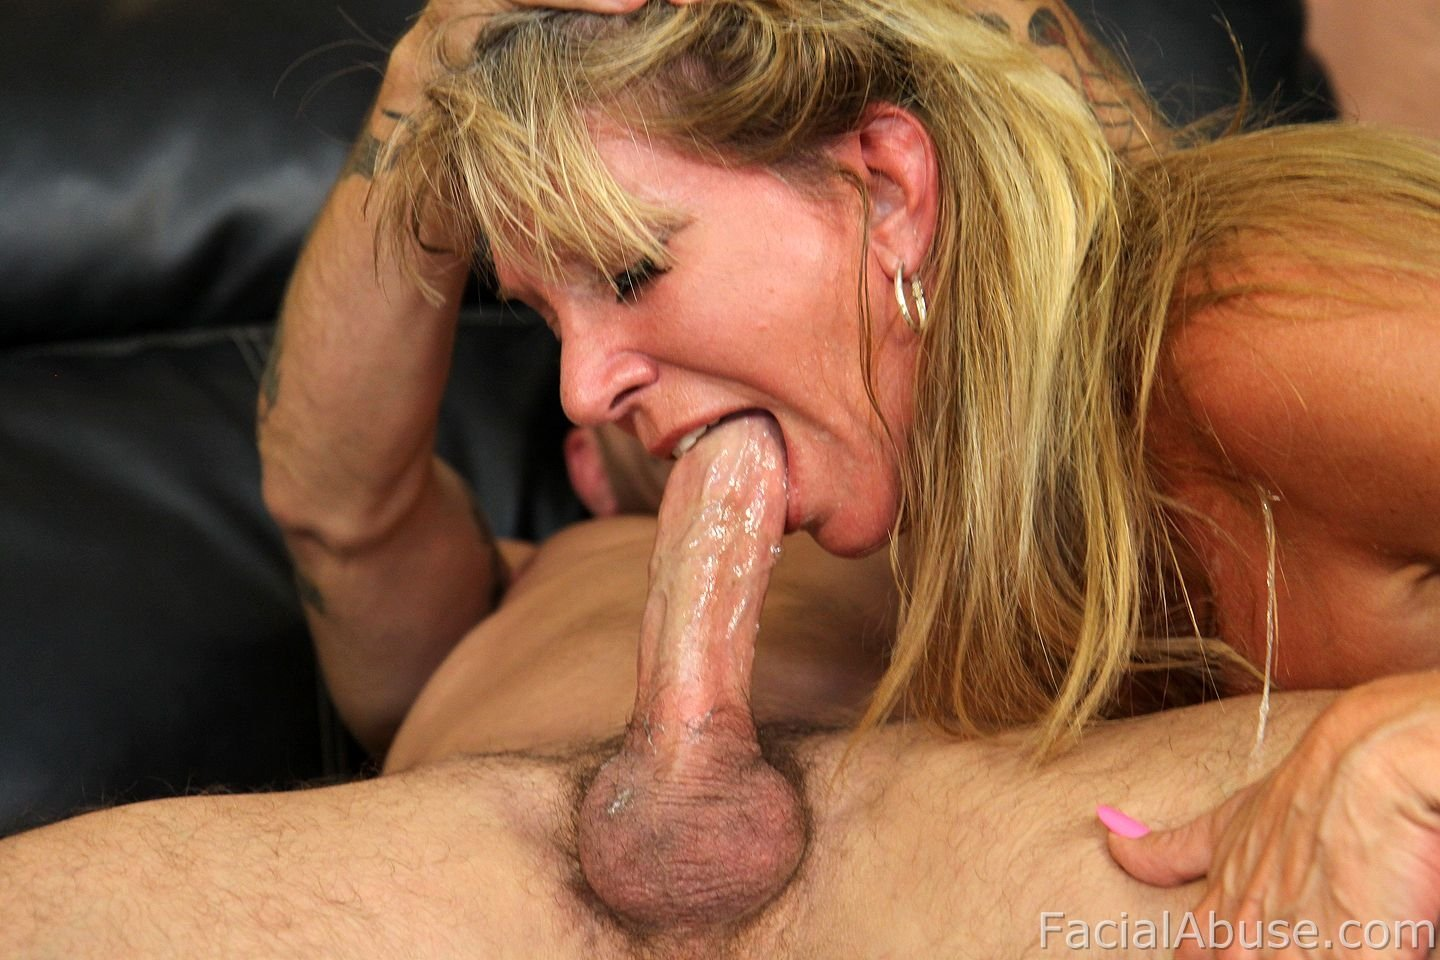 image Felicity feline throat fucked hard at facial abuse